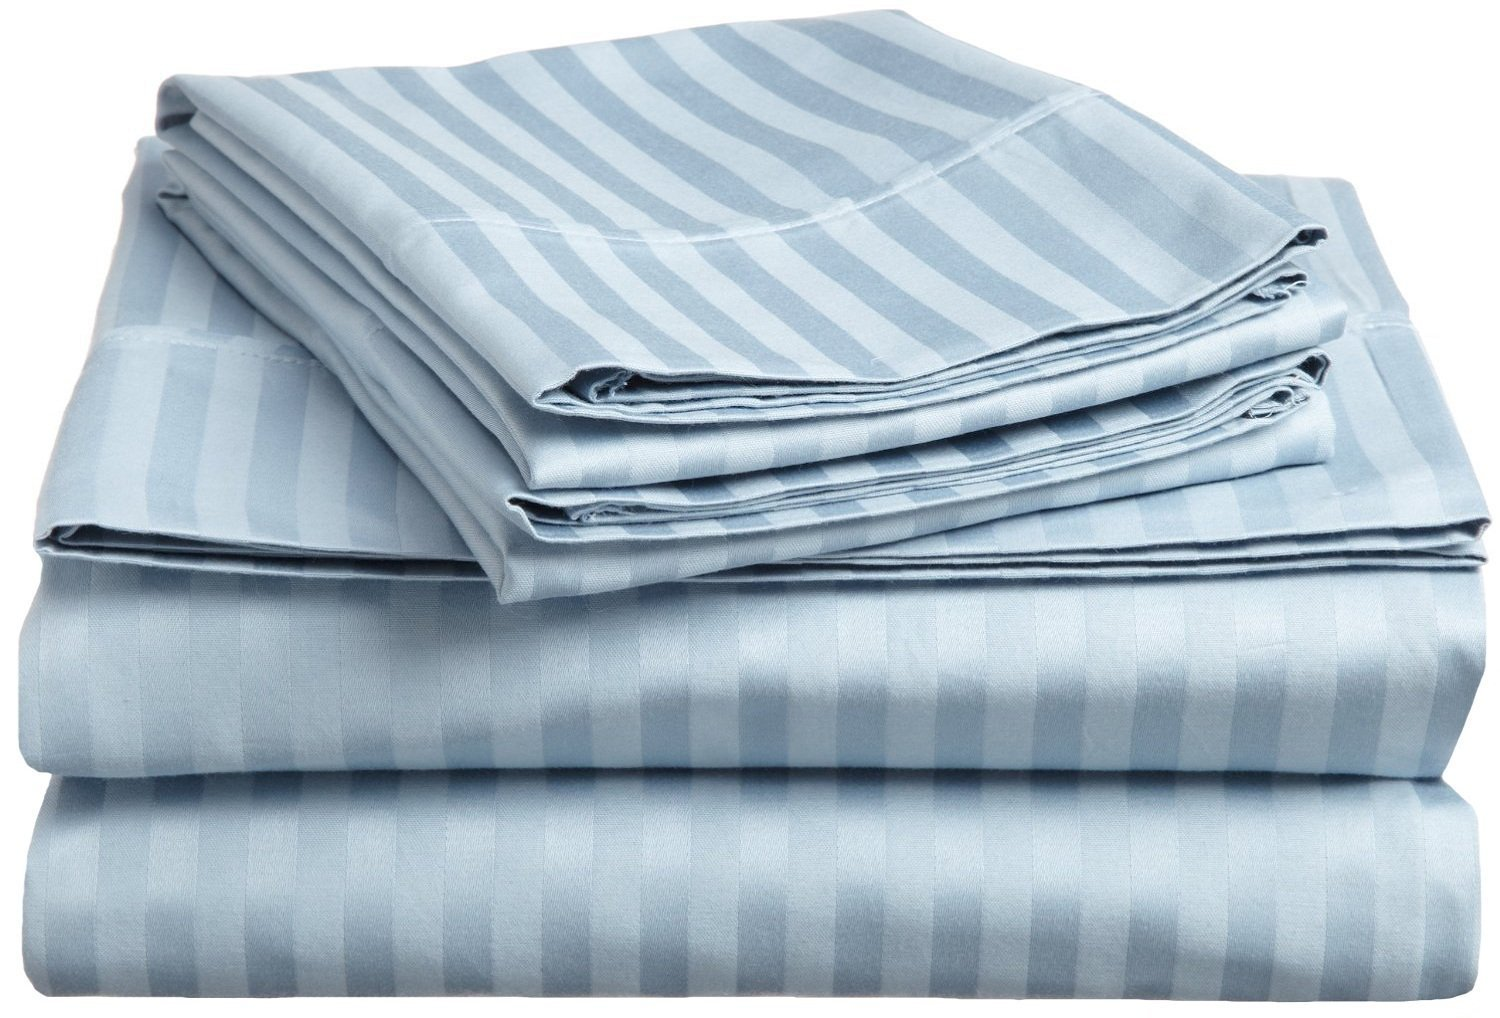 1000 Thread Count Nicely Fab RV Short Queen ( Size ) 100% Egyptian Cotton Flat / Top Sheet With Extra 2 PC Pillow Cases All Heavy Colors Striped ( Light Blue ) By Galaxy's Linen - Click Image to Close